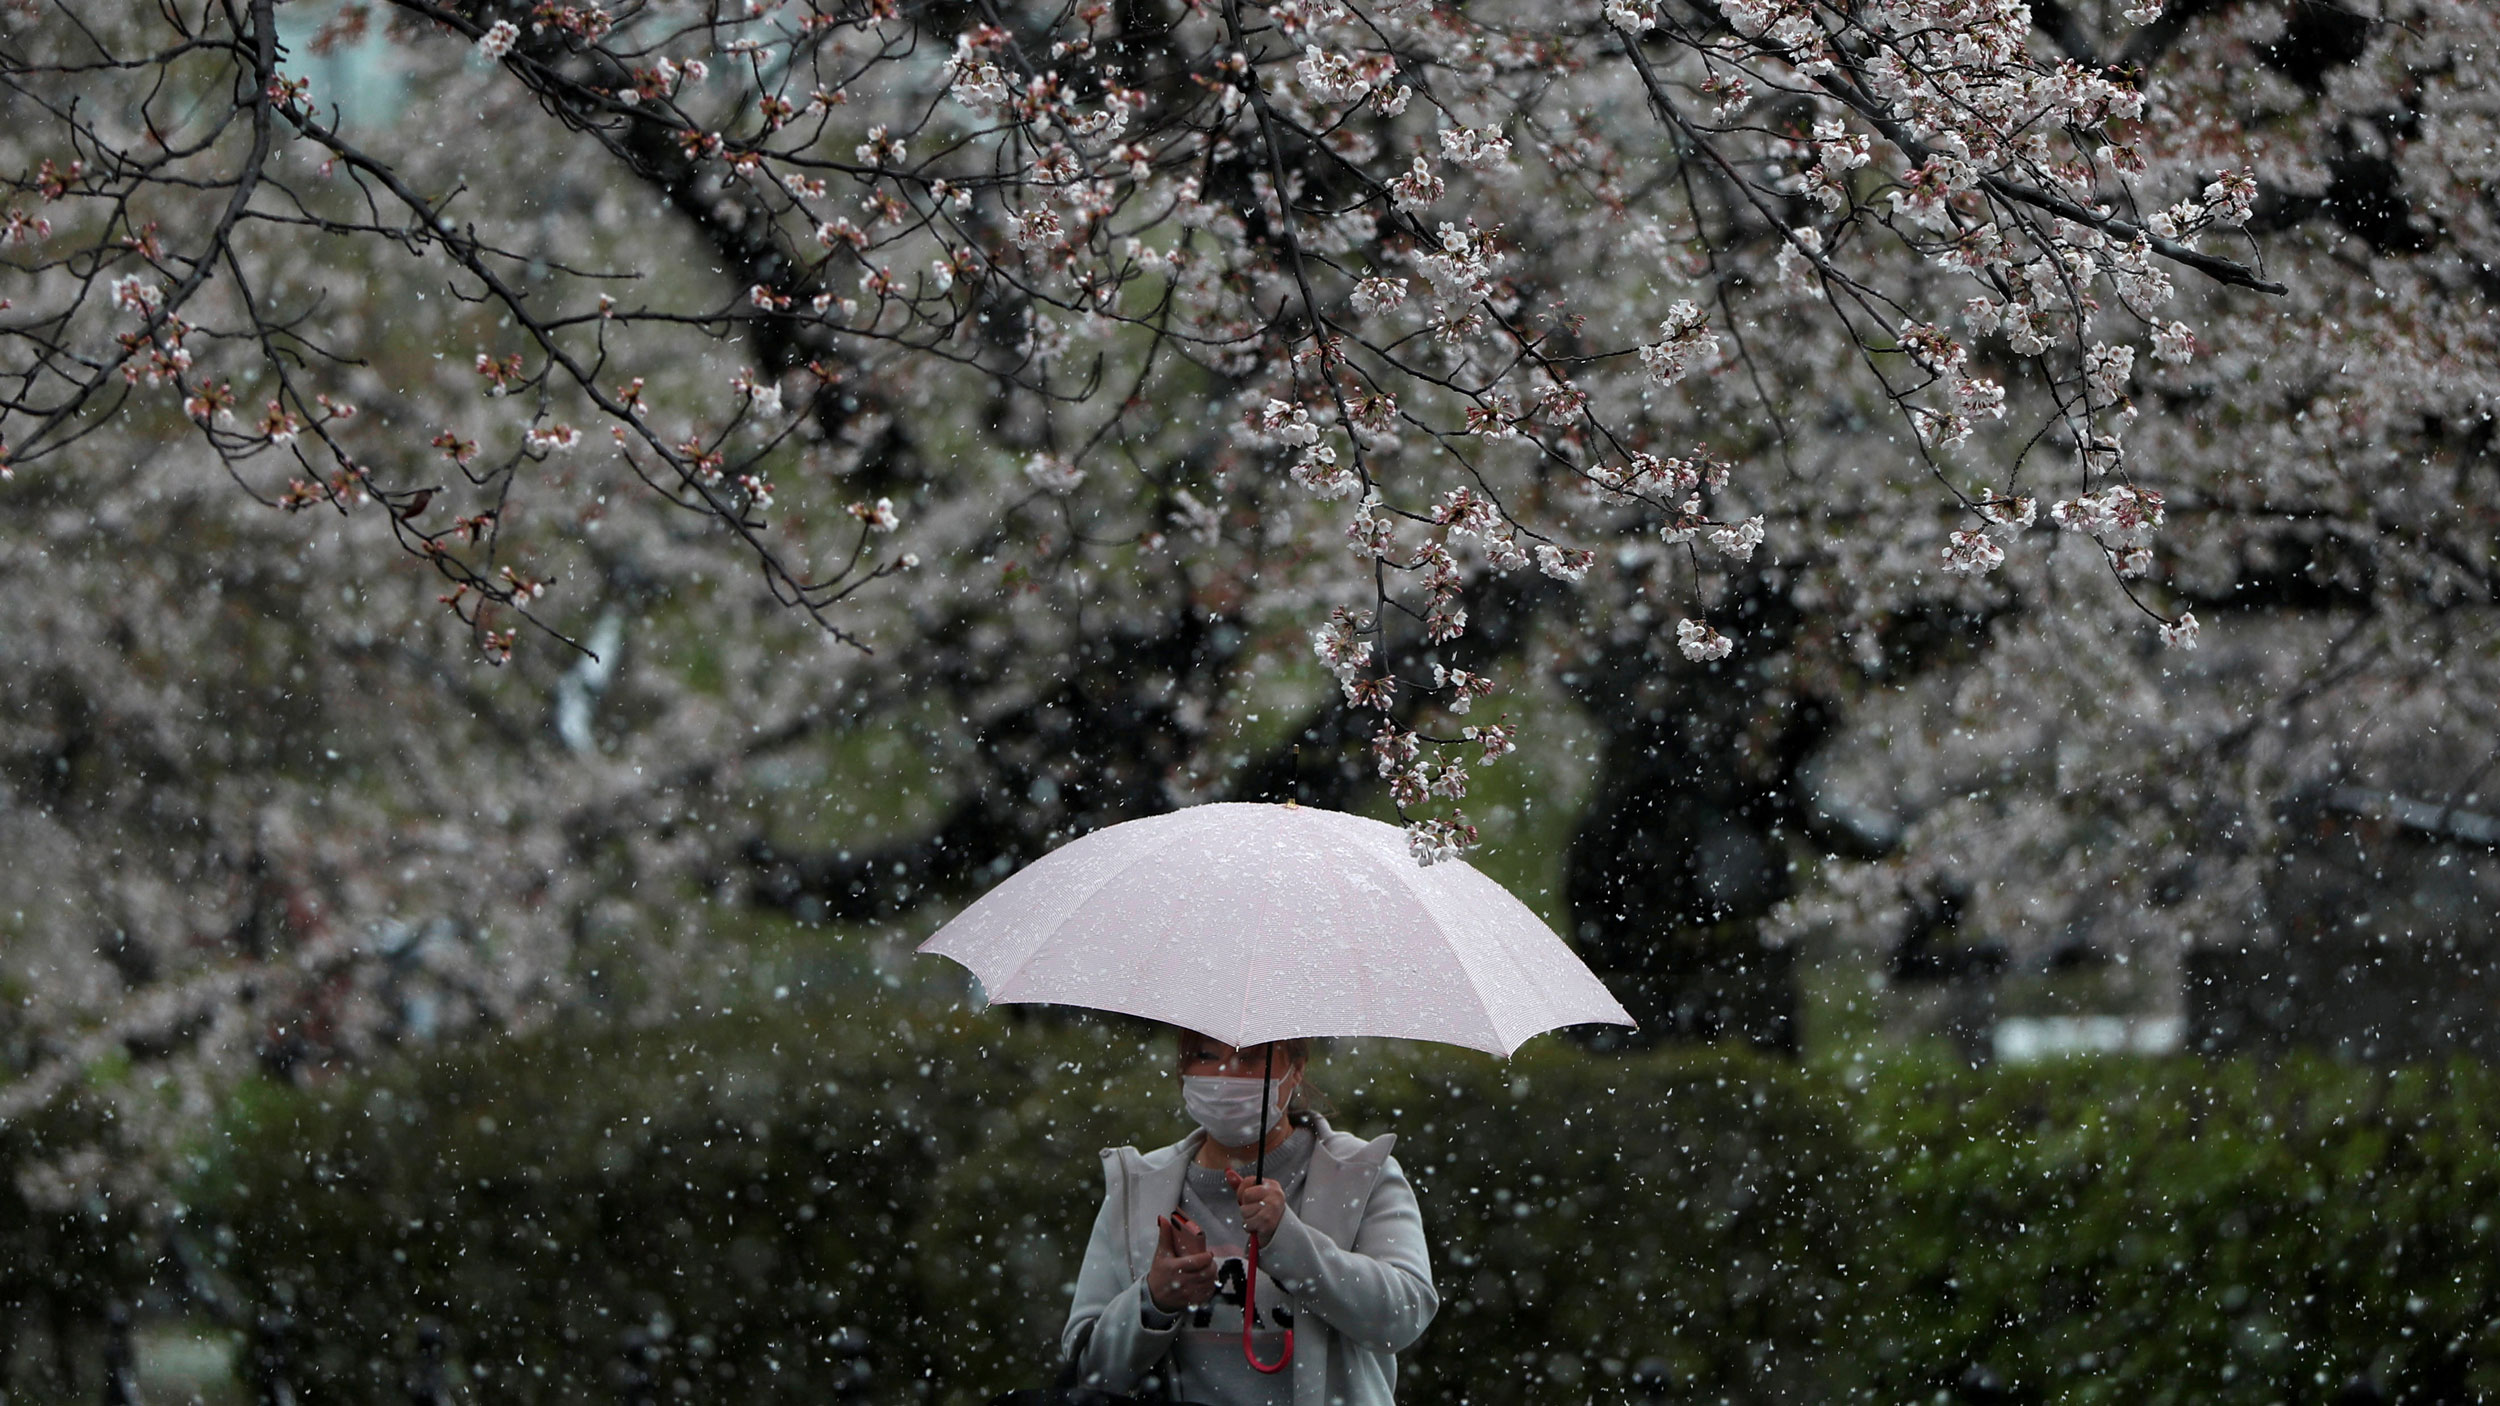 A woman is shown walking with through a area with flowering trees while holding an umbrella.